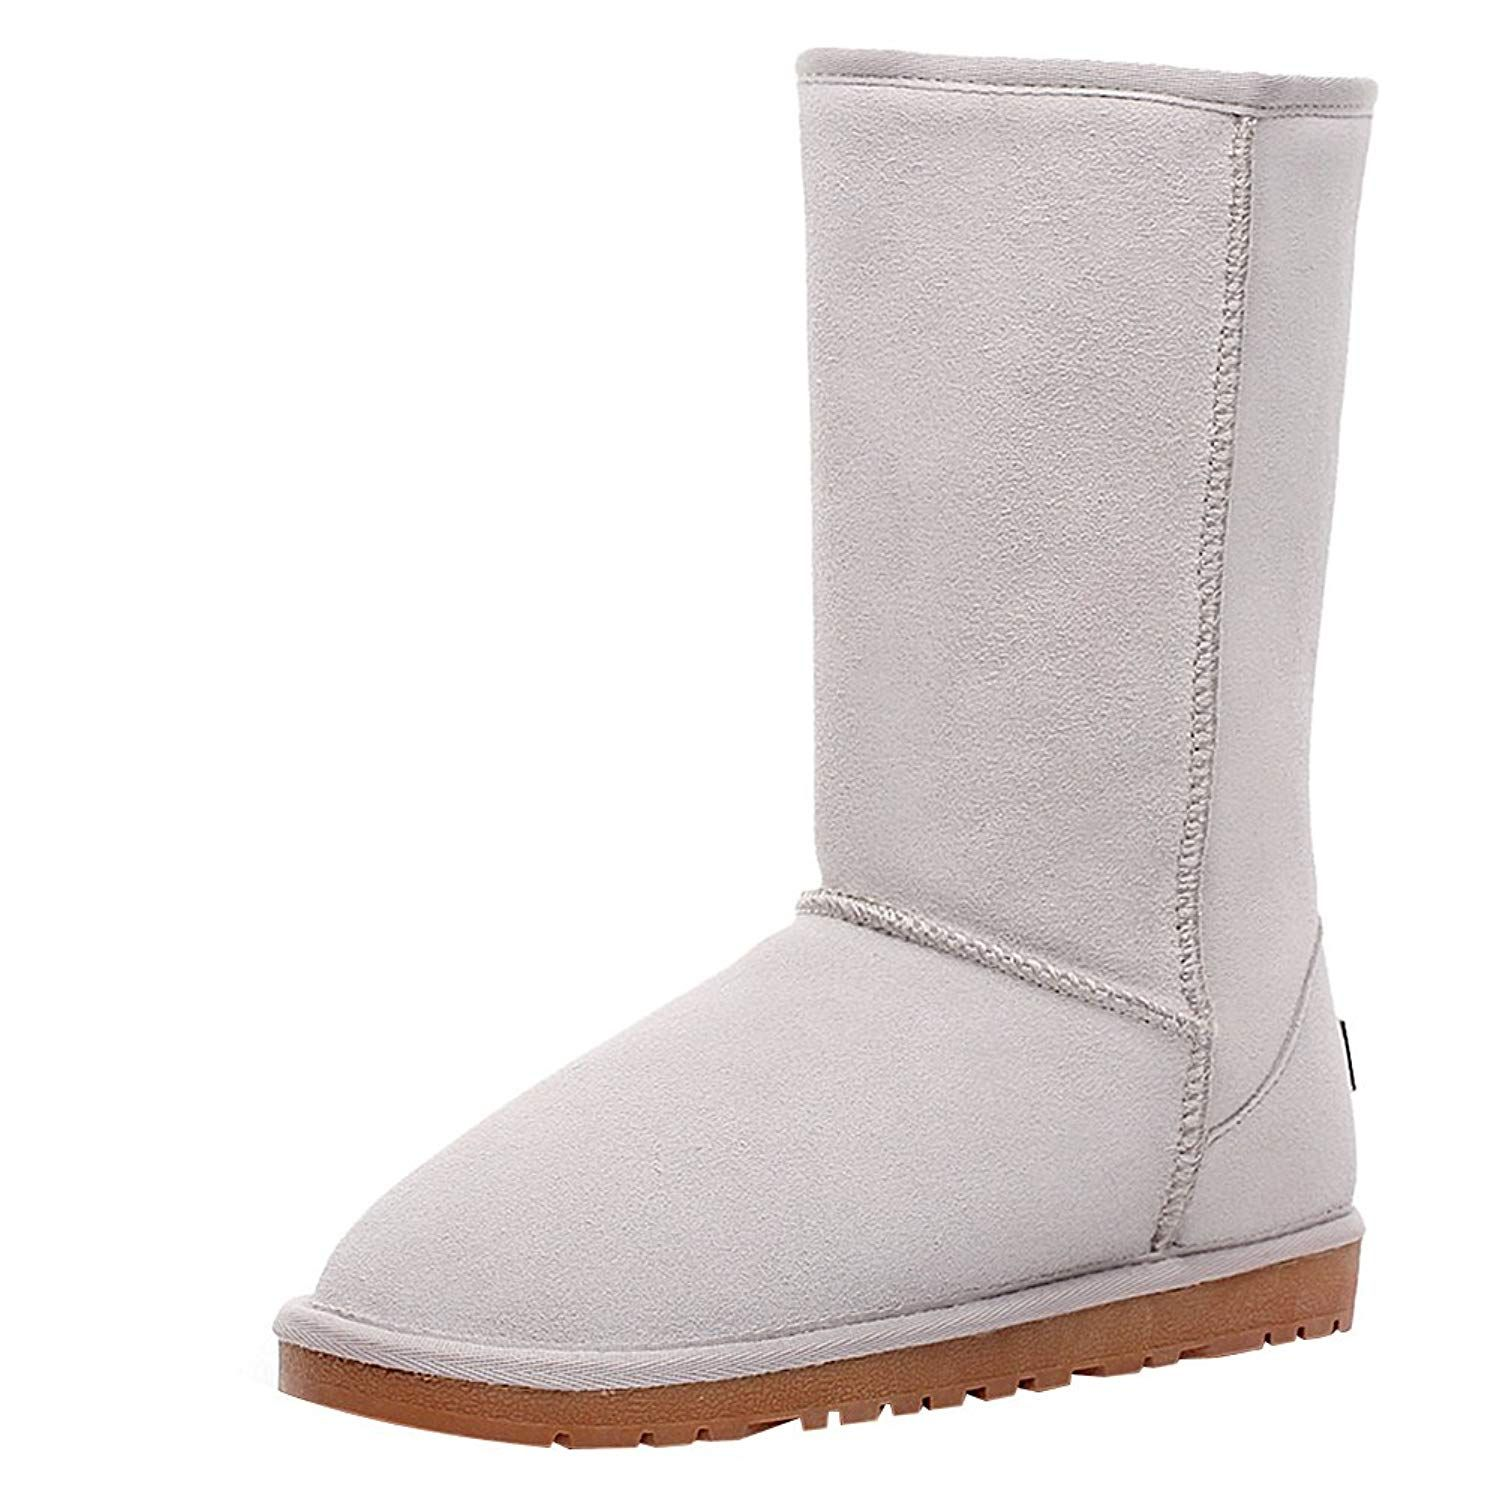 f7aab9b199bd rismart Women Classic Mid-Calf Thermal Suede Snow Boots Thick Faux Fur  Lined Winter Boots     Wonderful of you to drop by to visit the picture.